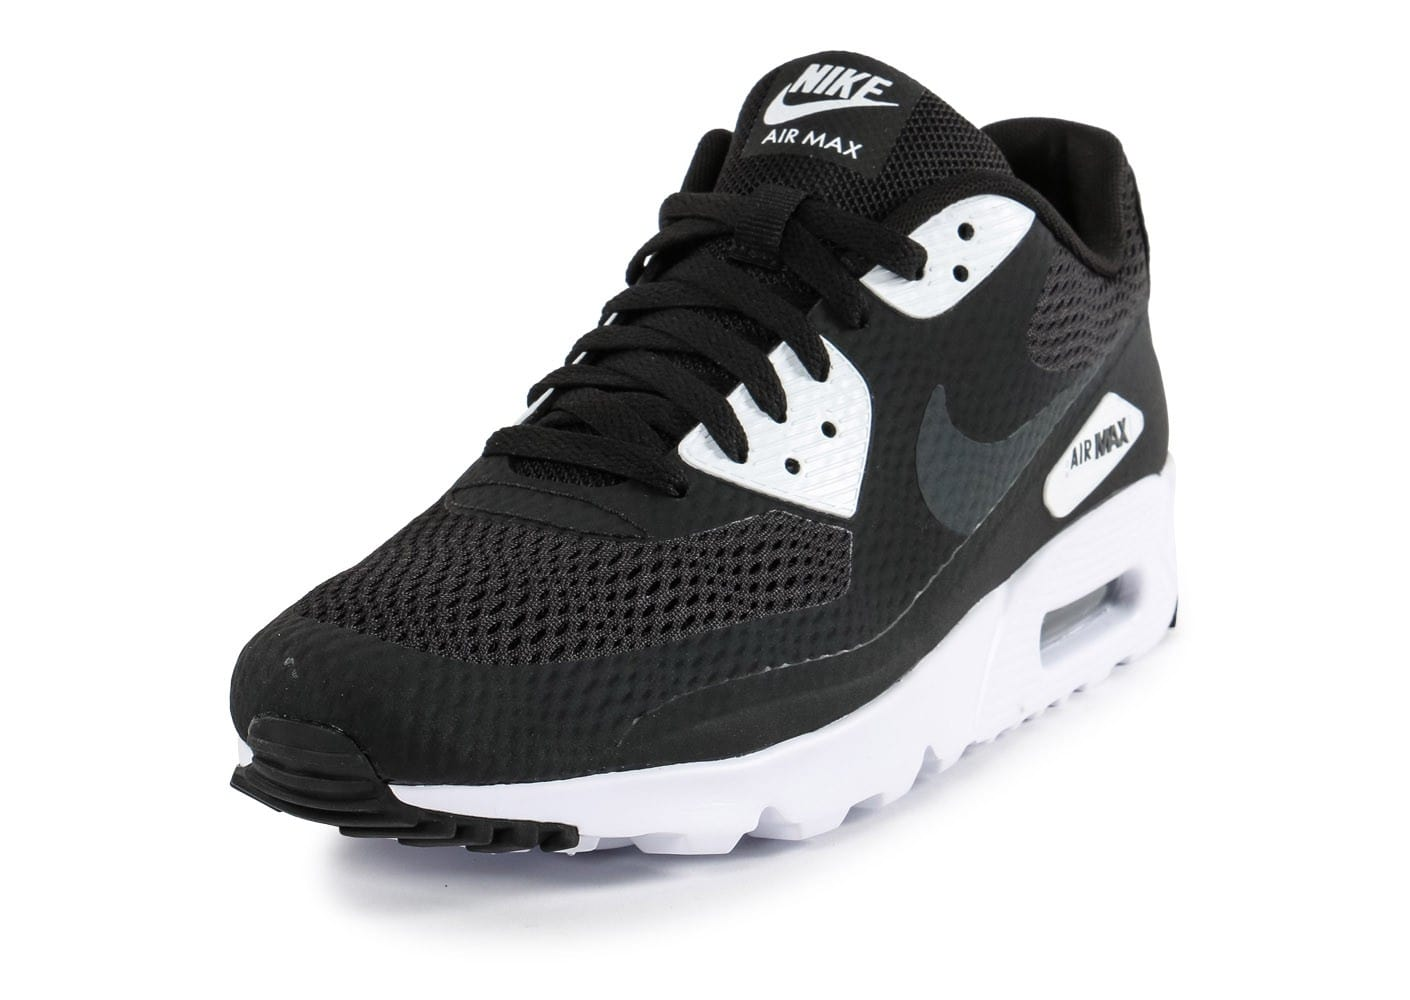 Nike Max Bw Blanche Noire Et Ultra Chaussures Homme Snap Air FTJc3Kl1